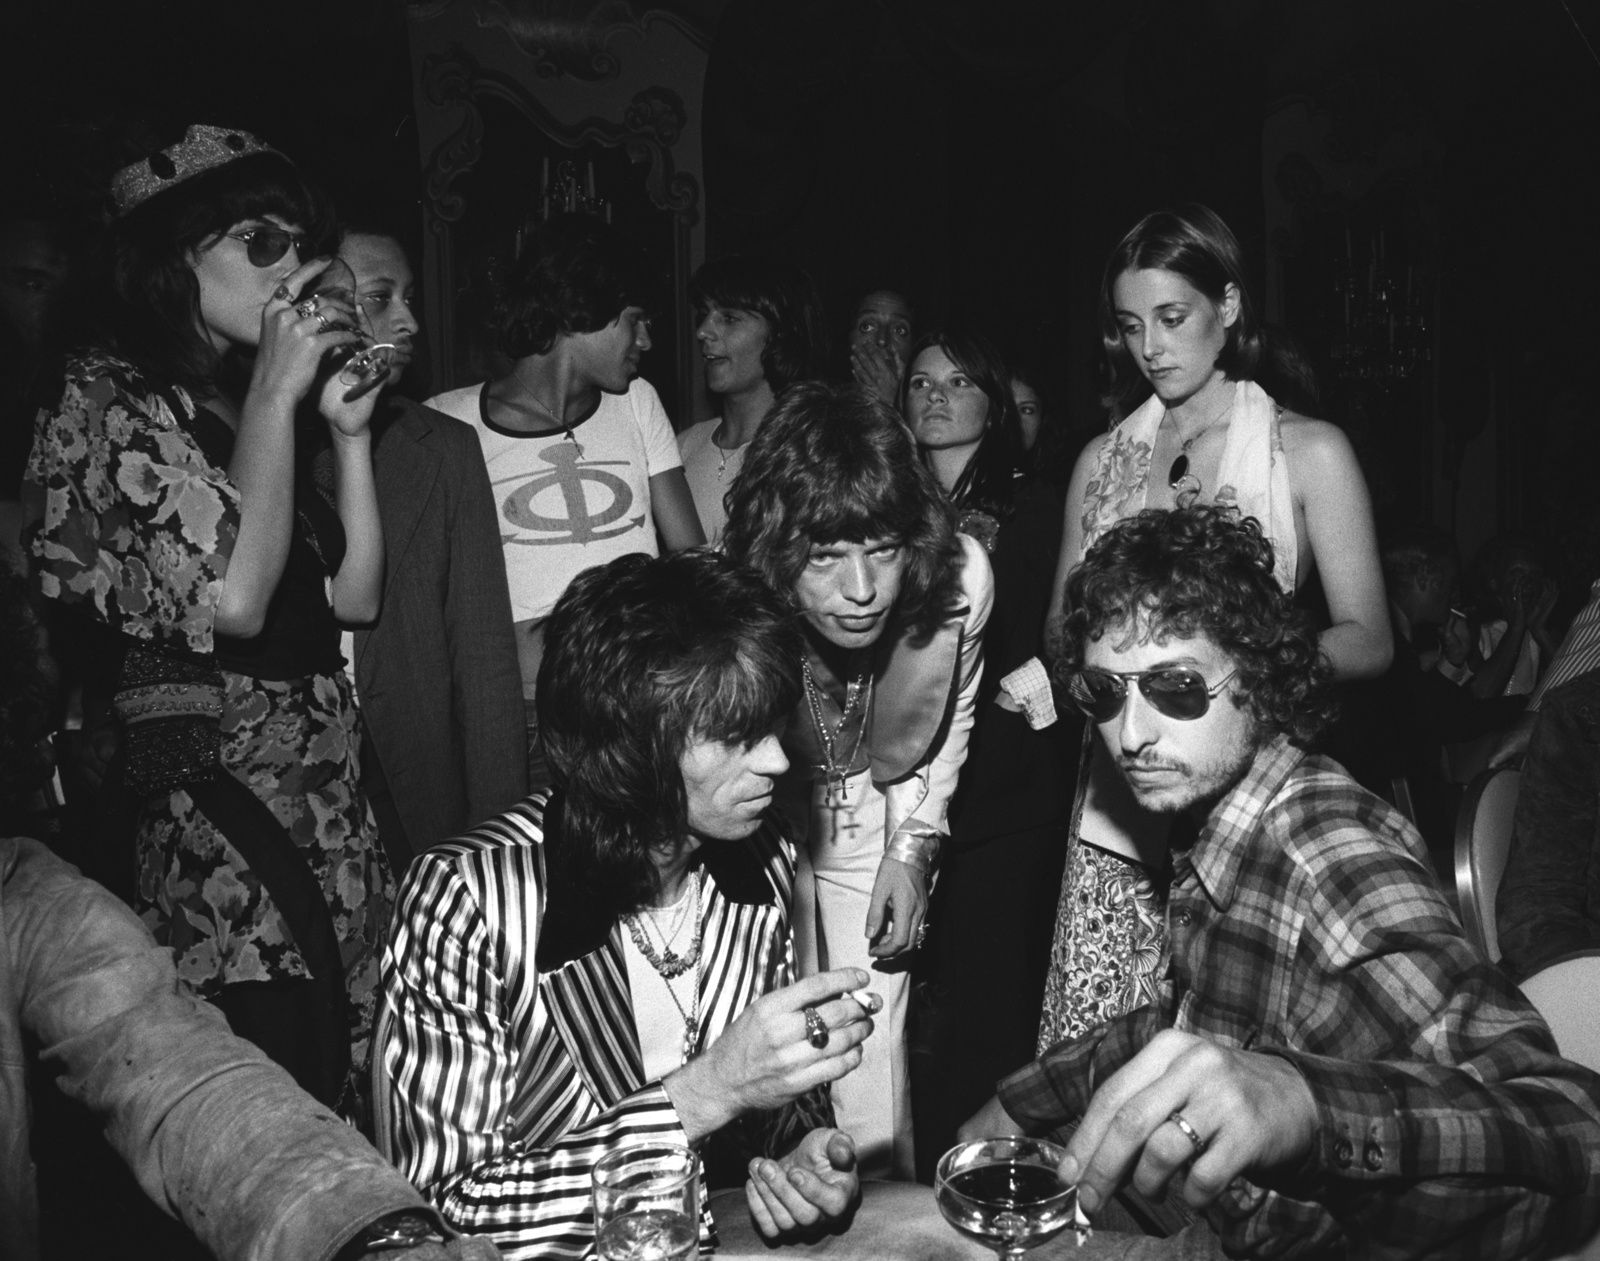 Bob Dylan, Mick Jagger and Keith Richards at Jaggers 29th birthday party (July 1972)